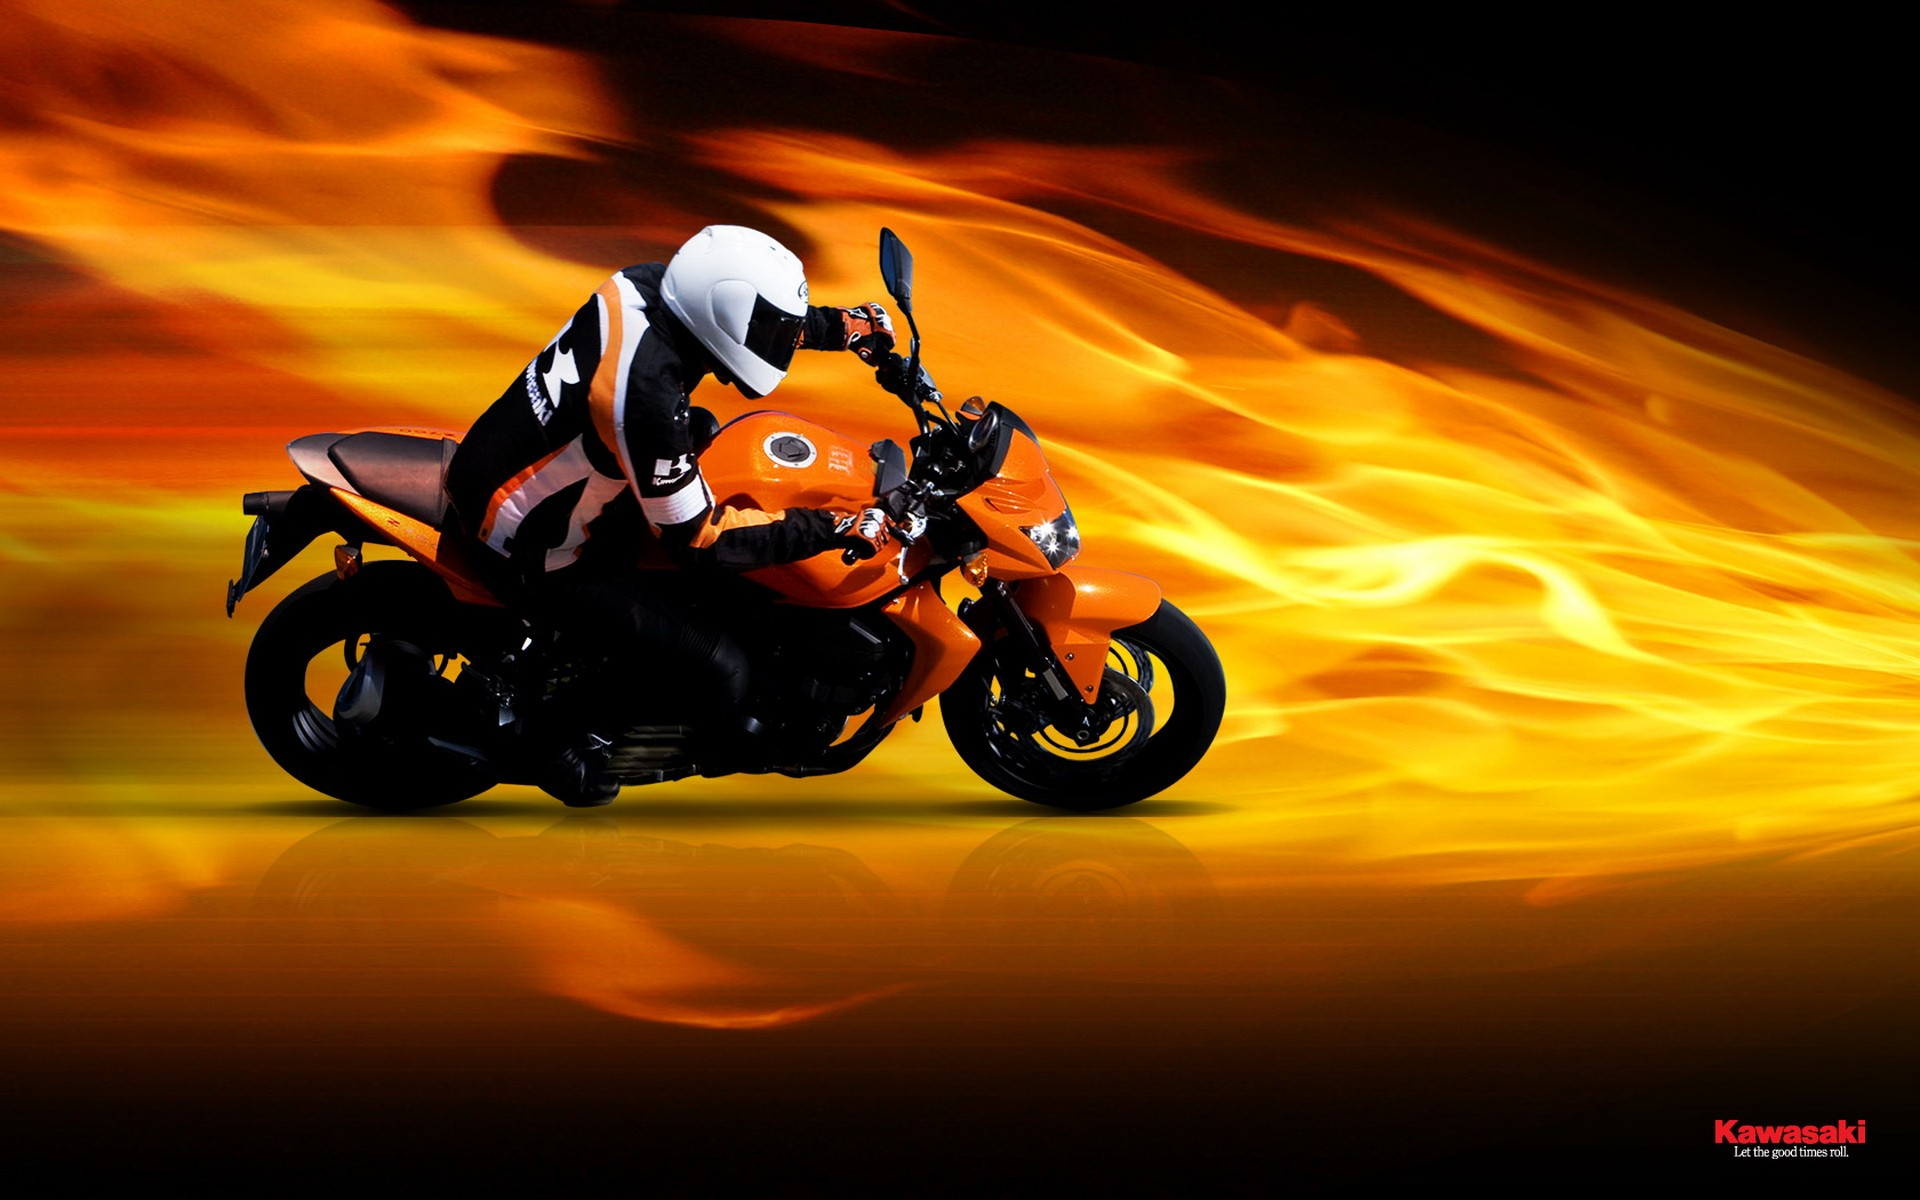 Kawasaki Z750 Bike Fire Motorcycle 1920x1200